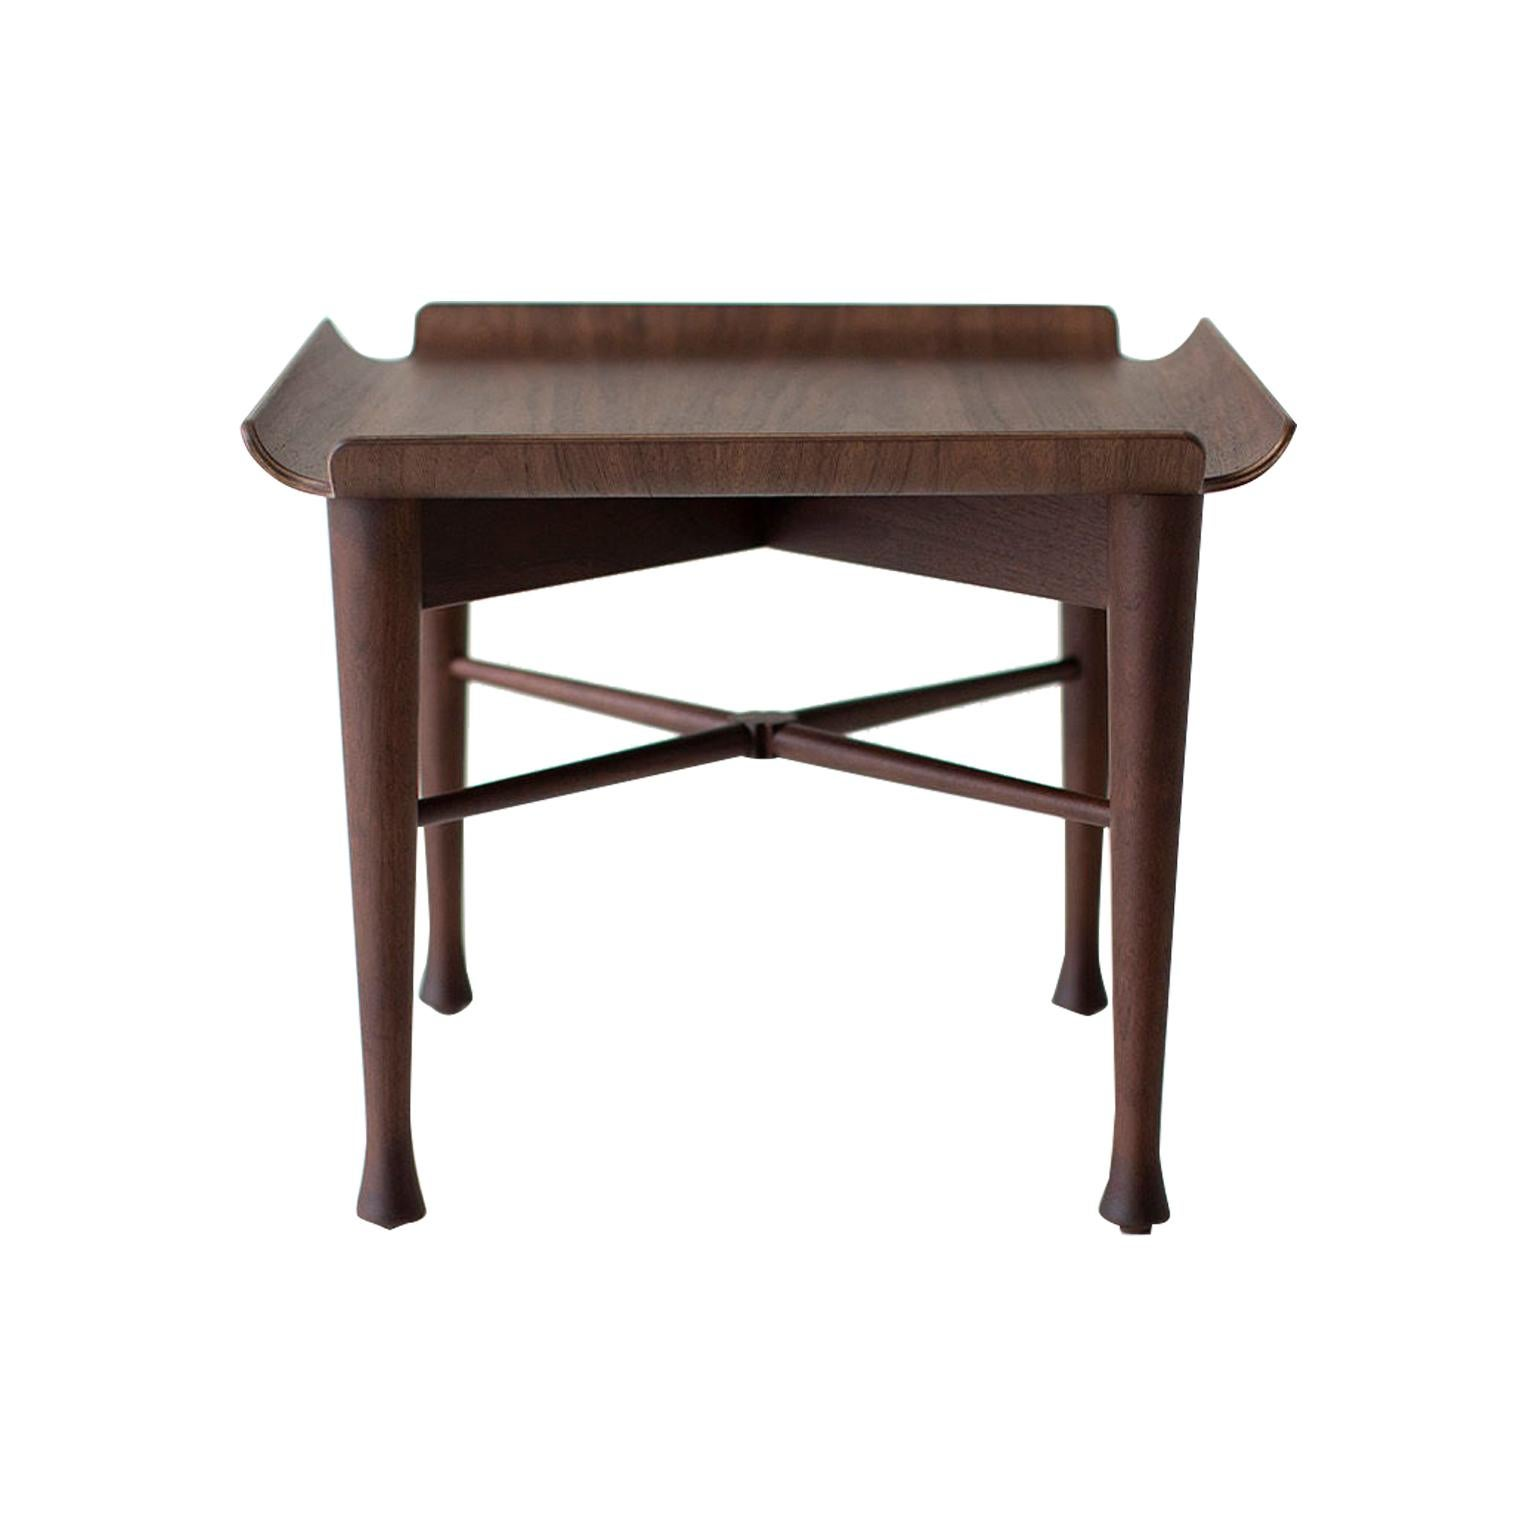 Lawrence Peabody Walnut Side Table for Craft Associates Furniture